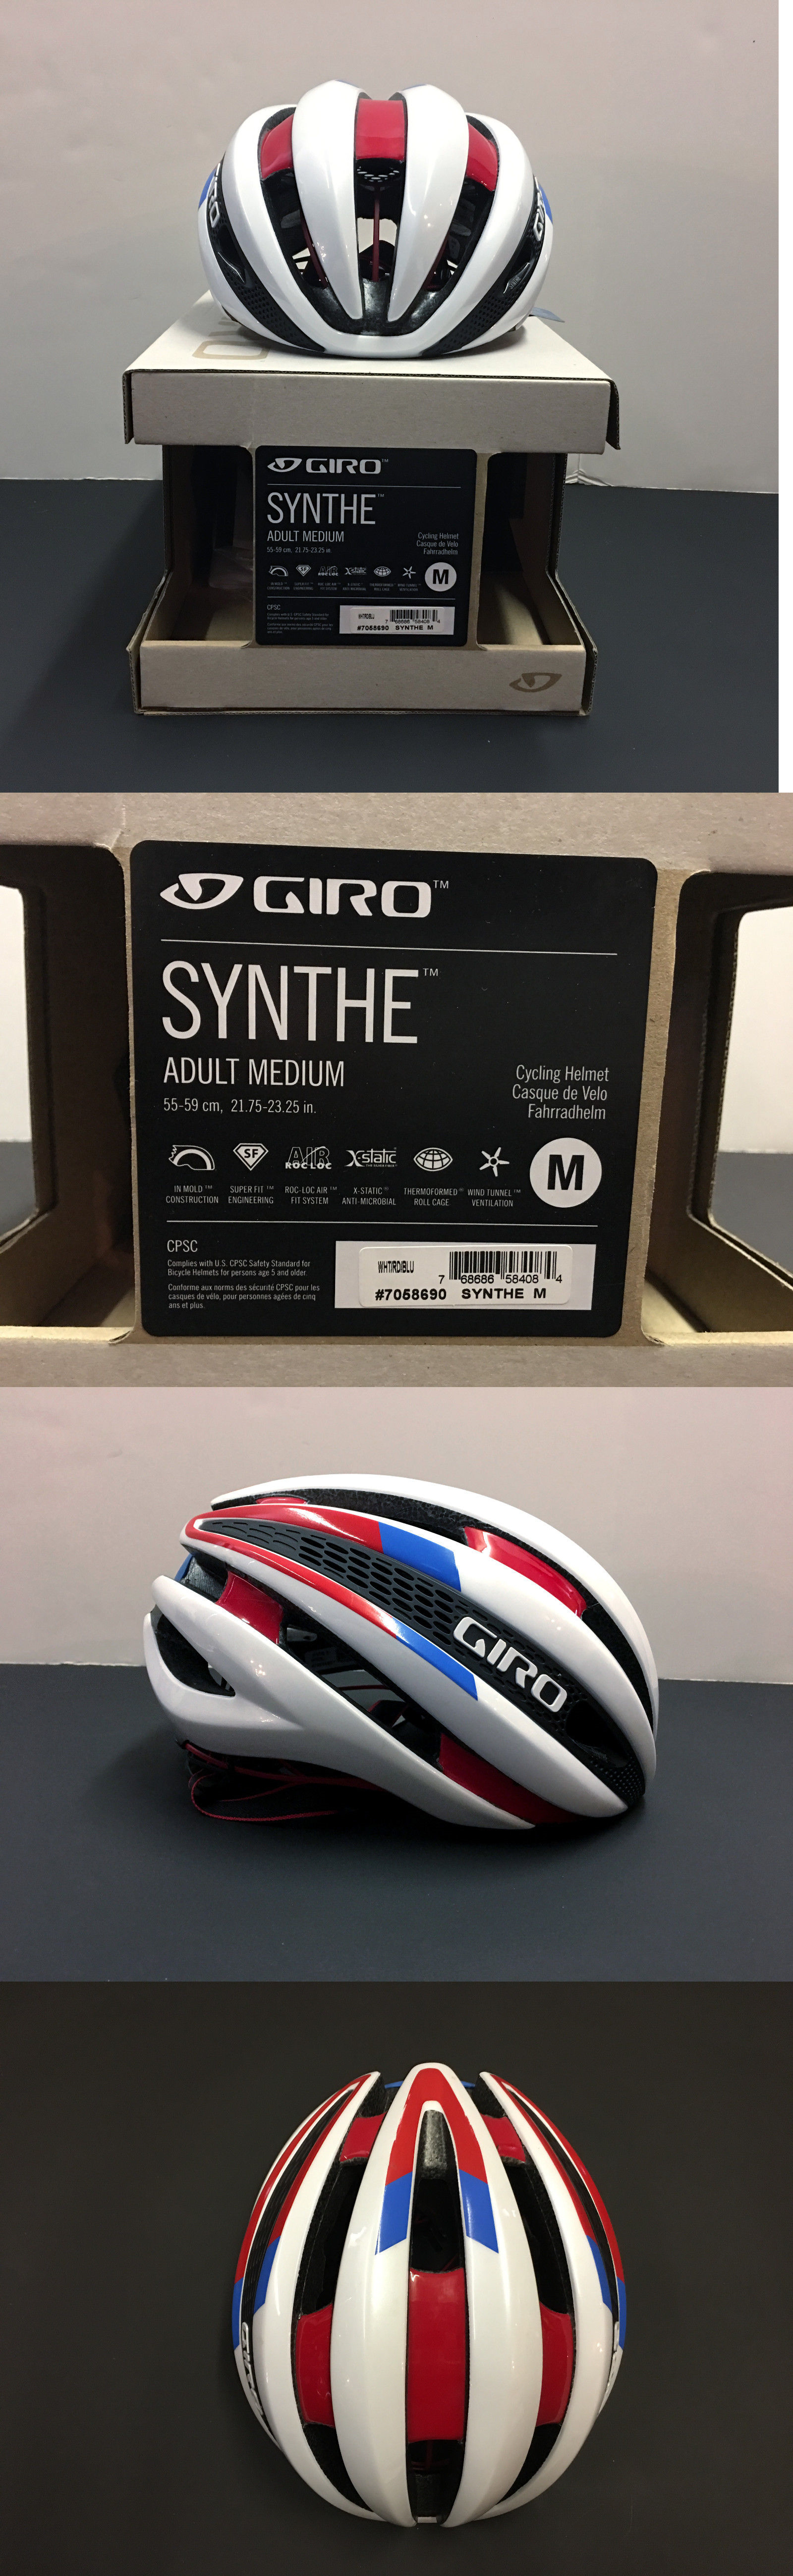 Helmets 70911 Giro Synthe Road Cycling Helmet Red White Blue Size Medium Buy It Now Only 189 95 On Ebay Cycling Helmet Red White Blue Road Cycling